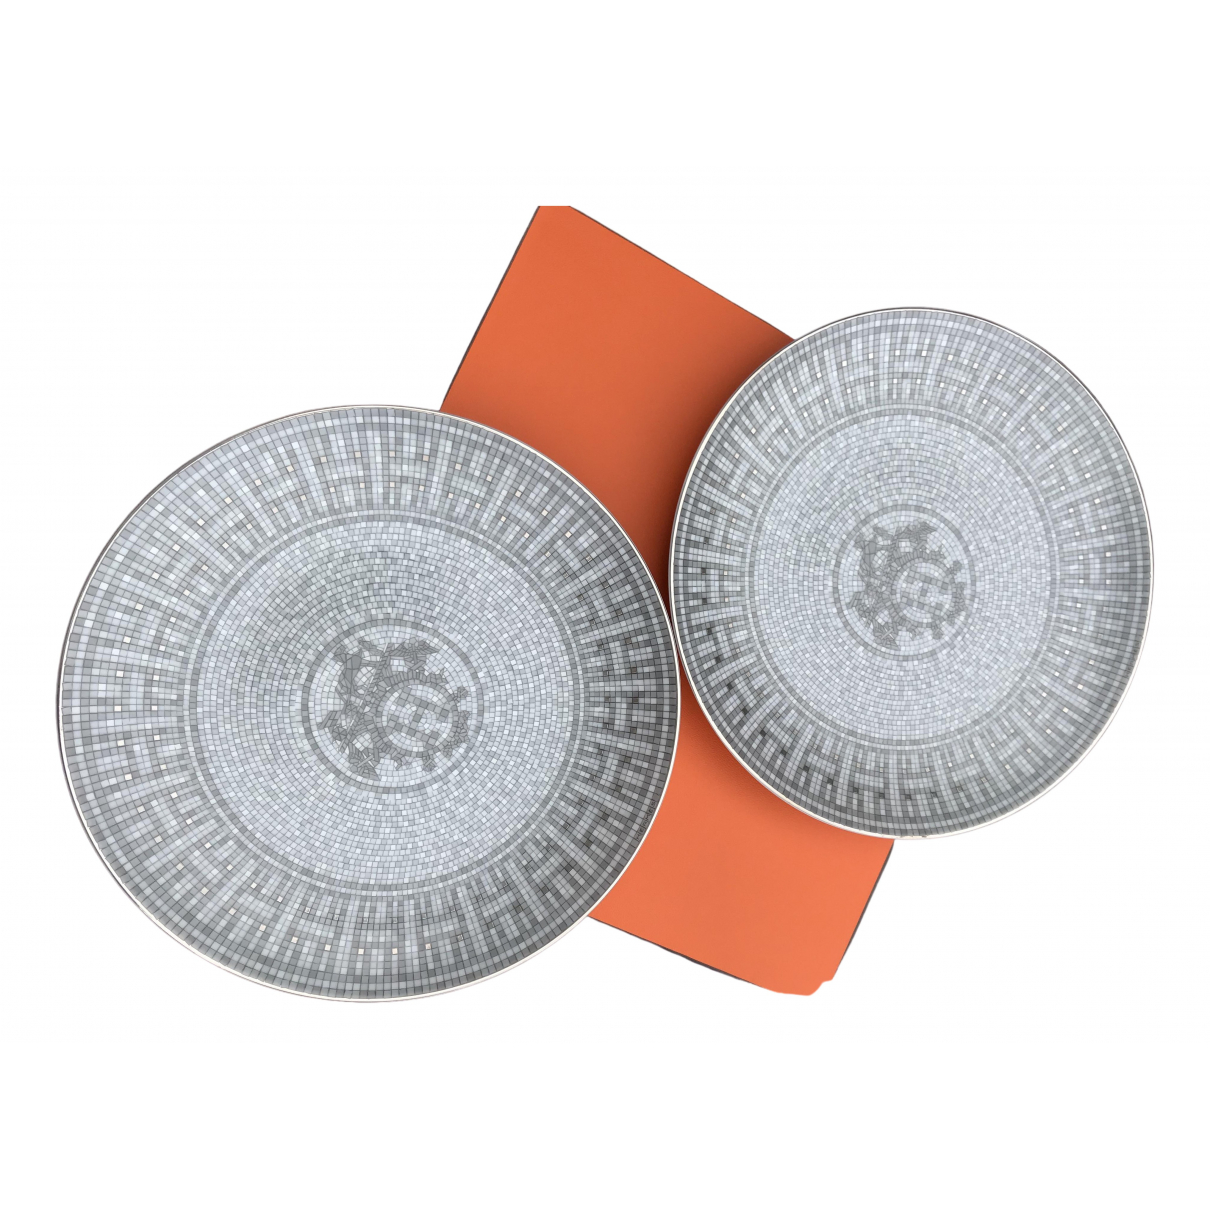 Hermes - Arts de la table Mosaique au 24 pour lifestyle en porcelaine - gris